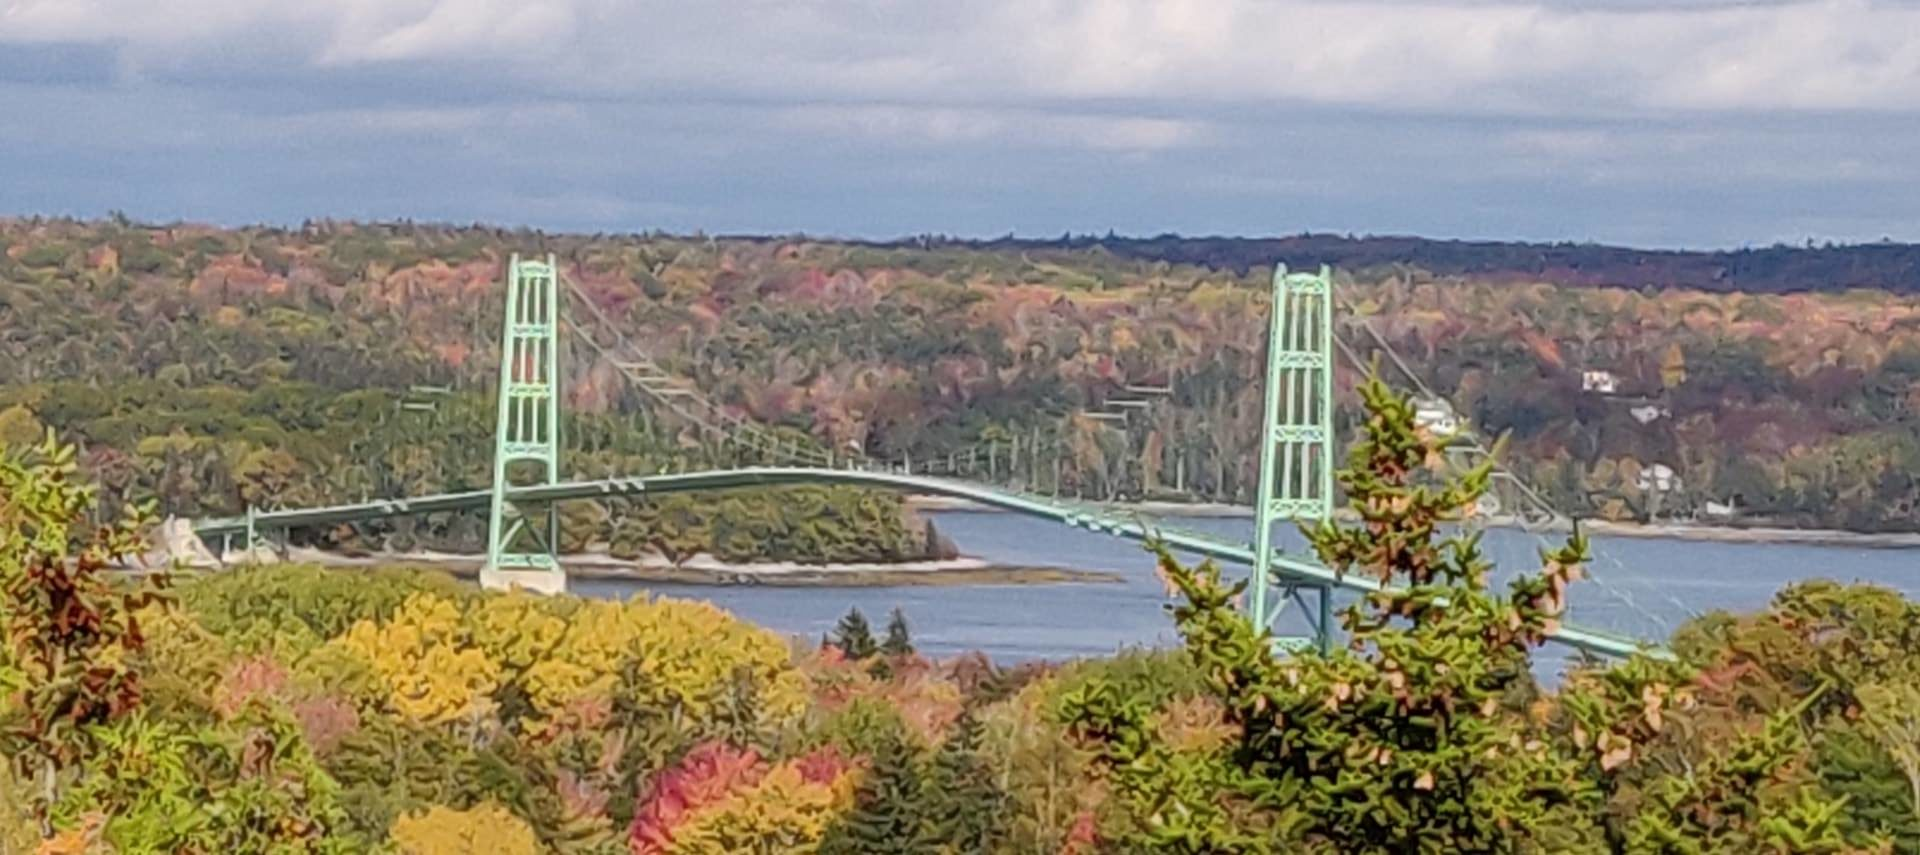 View of a large bridge over a body of water surrounded by many trees with fall color